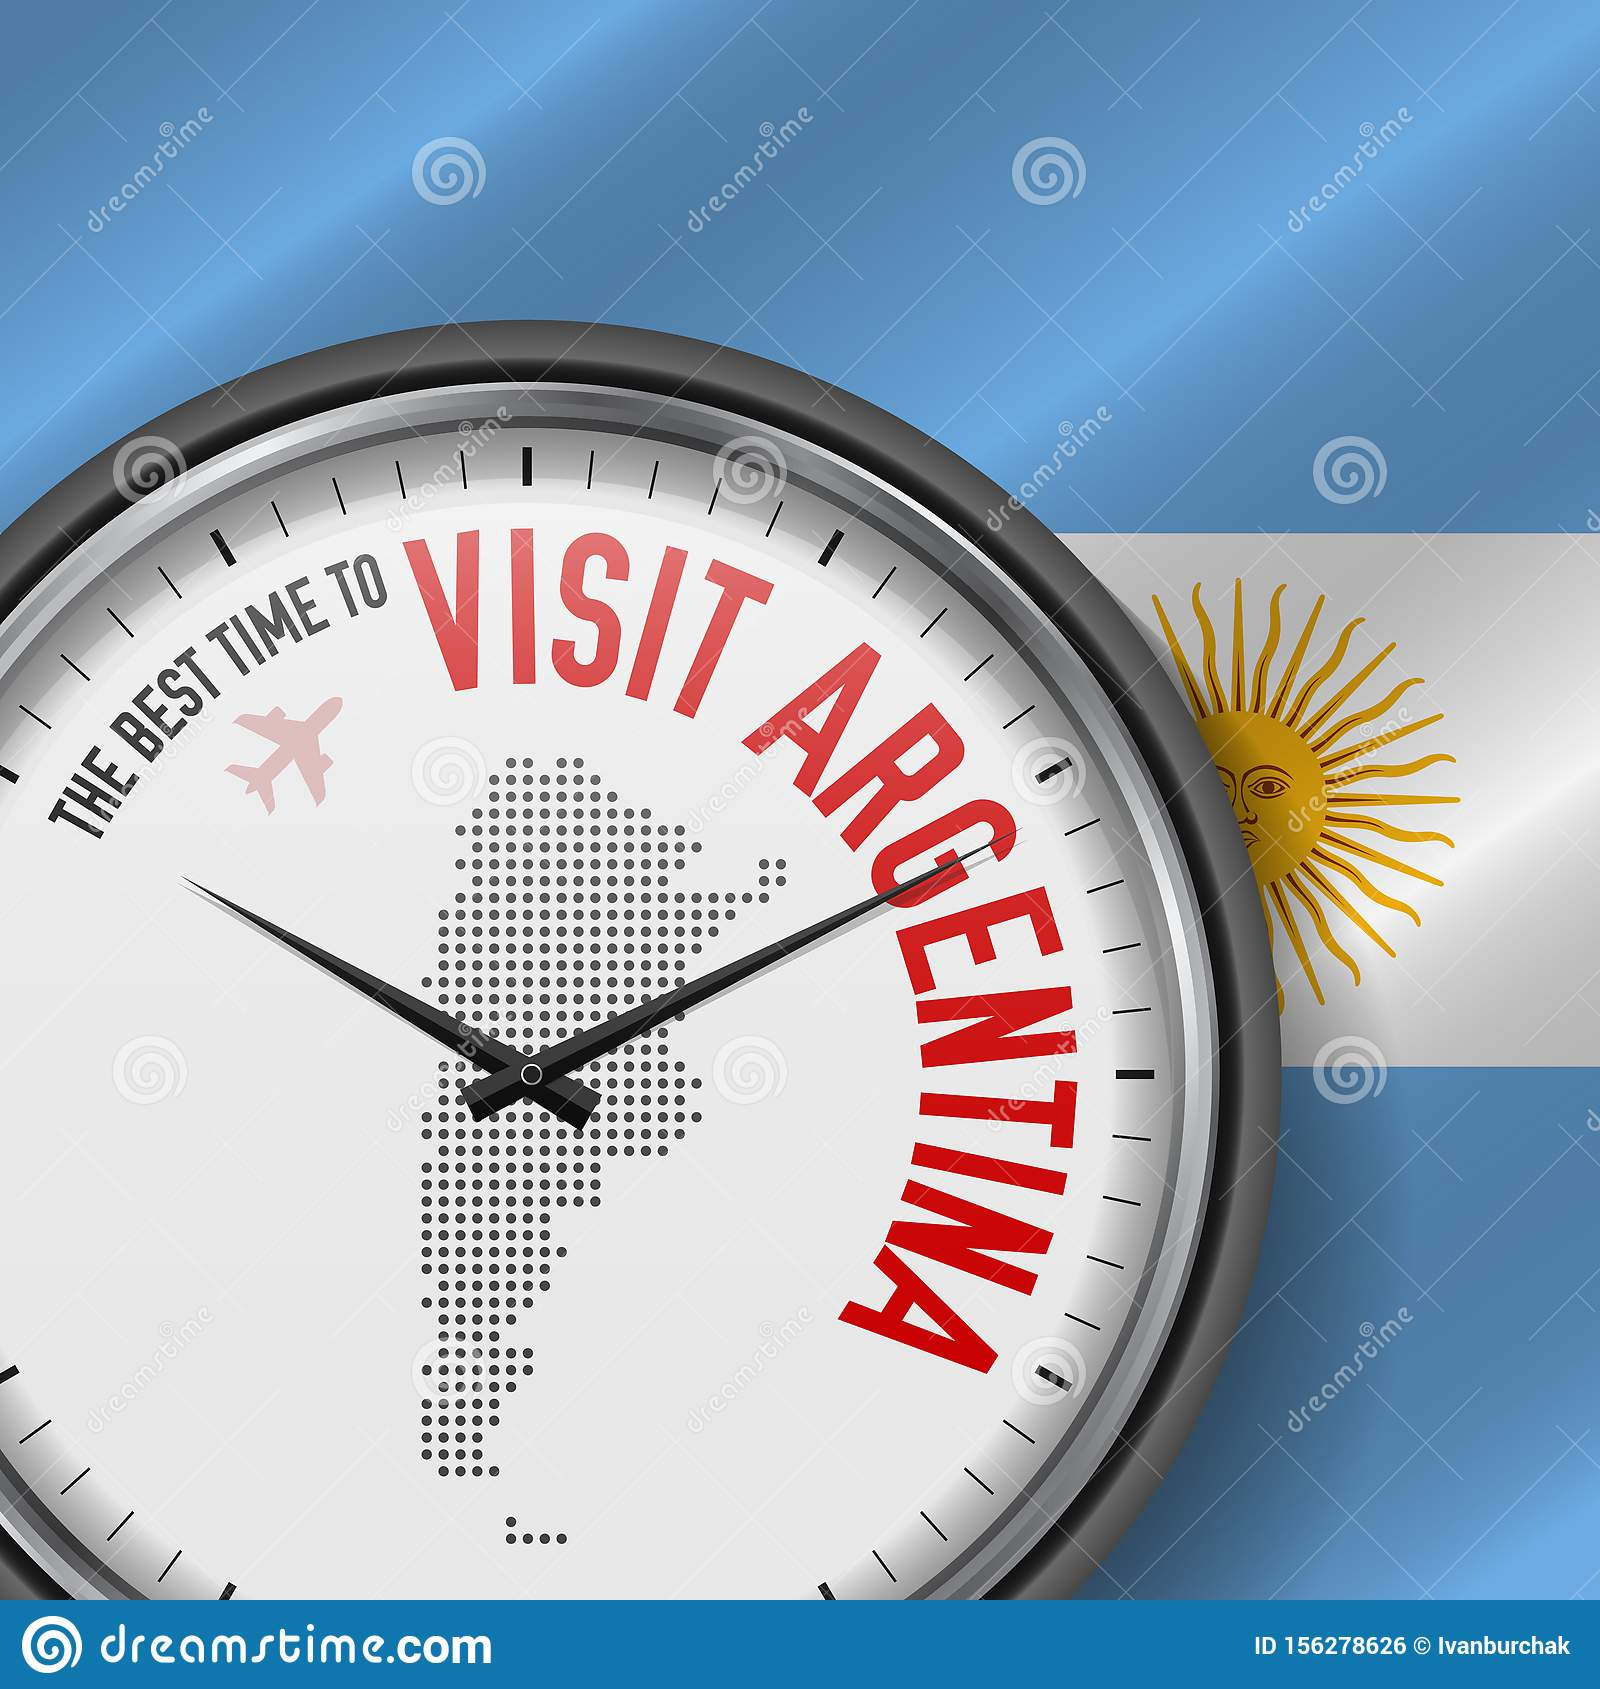 The Best Time to Visit Argentina. Flight, Tour to Argentina. Vector Illustration